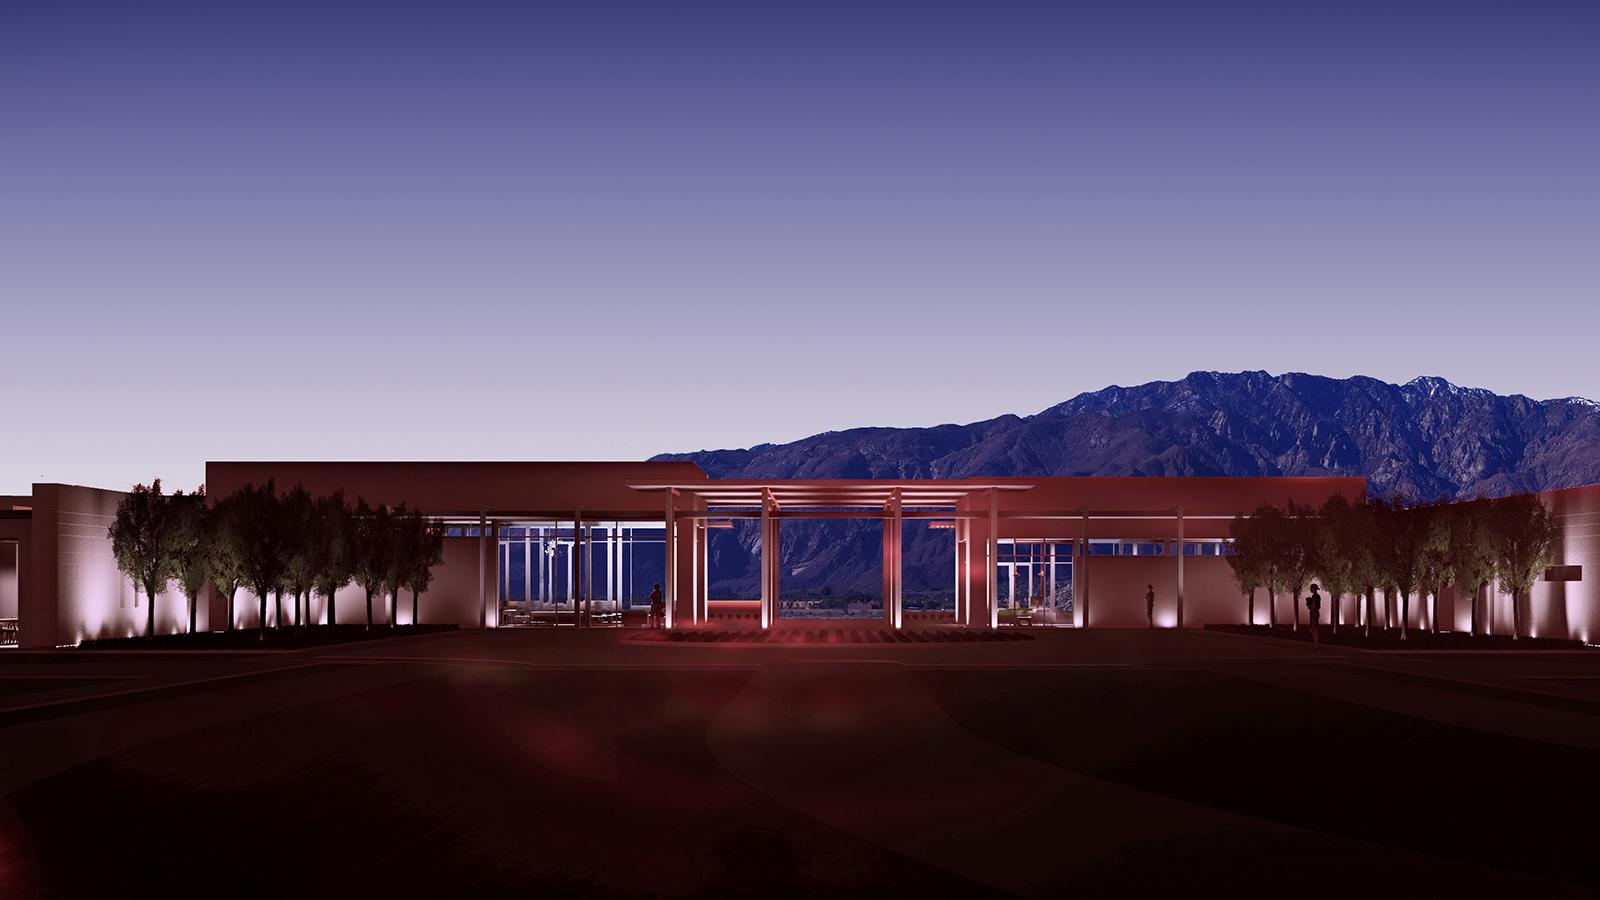 Dr Driving 3 >> #Miralon Master Plan Gallery - Palm Springs, CA - Robert Hidey Architects